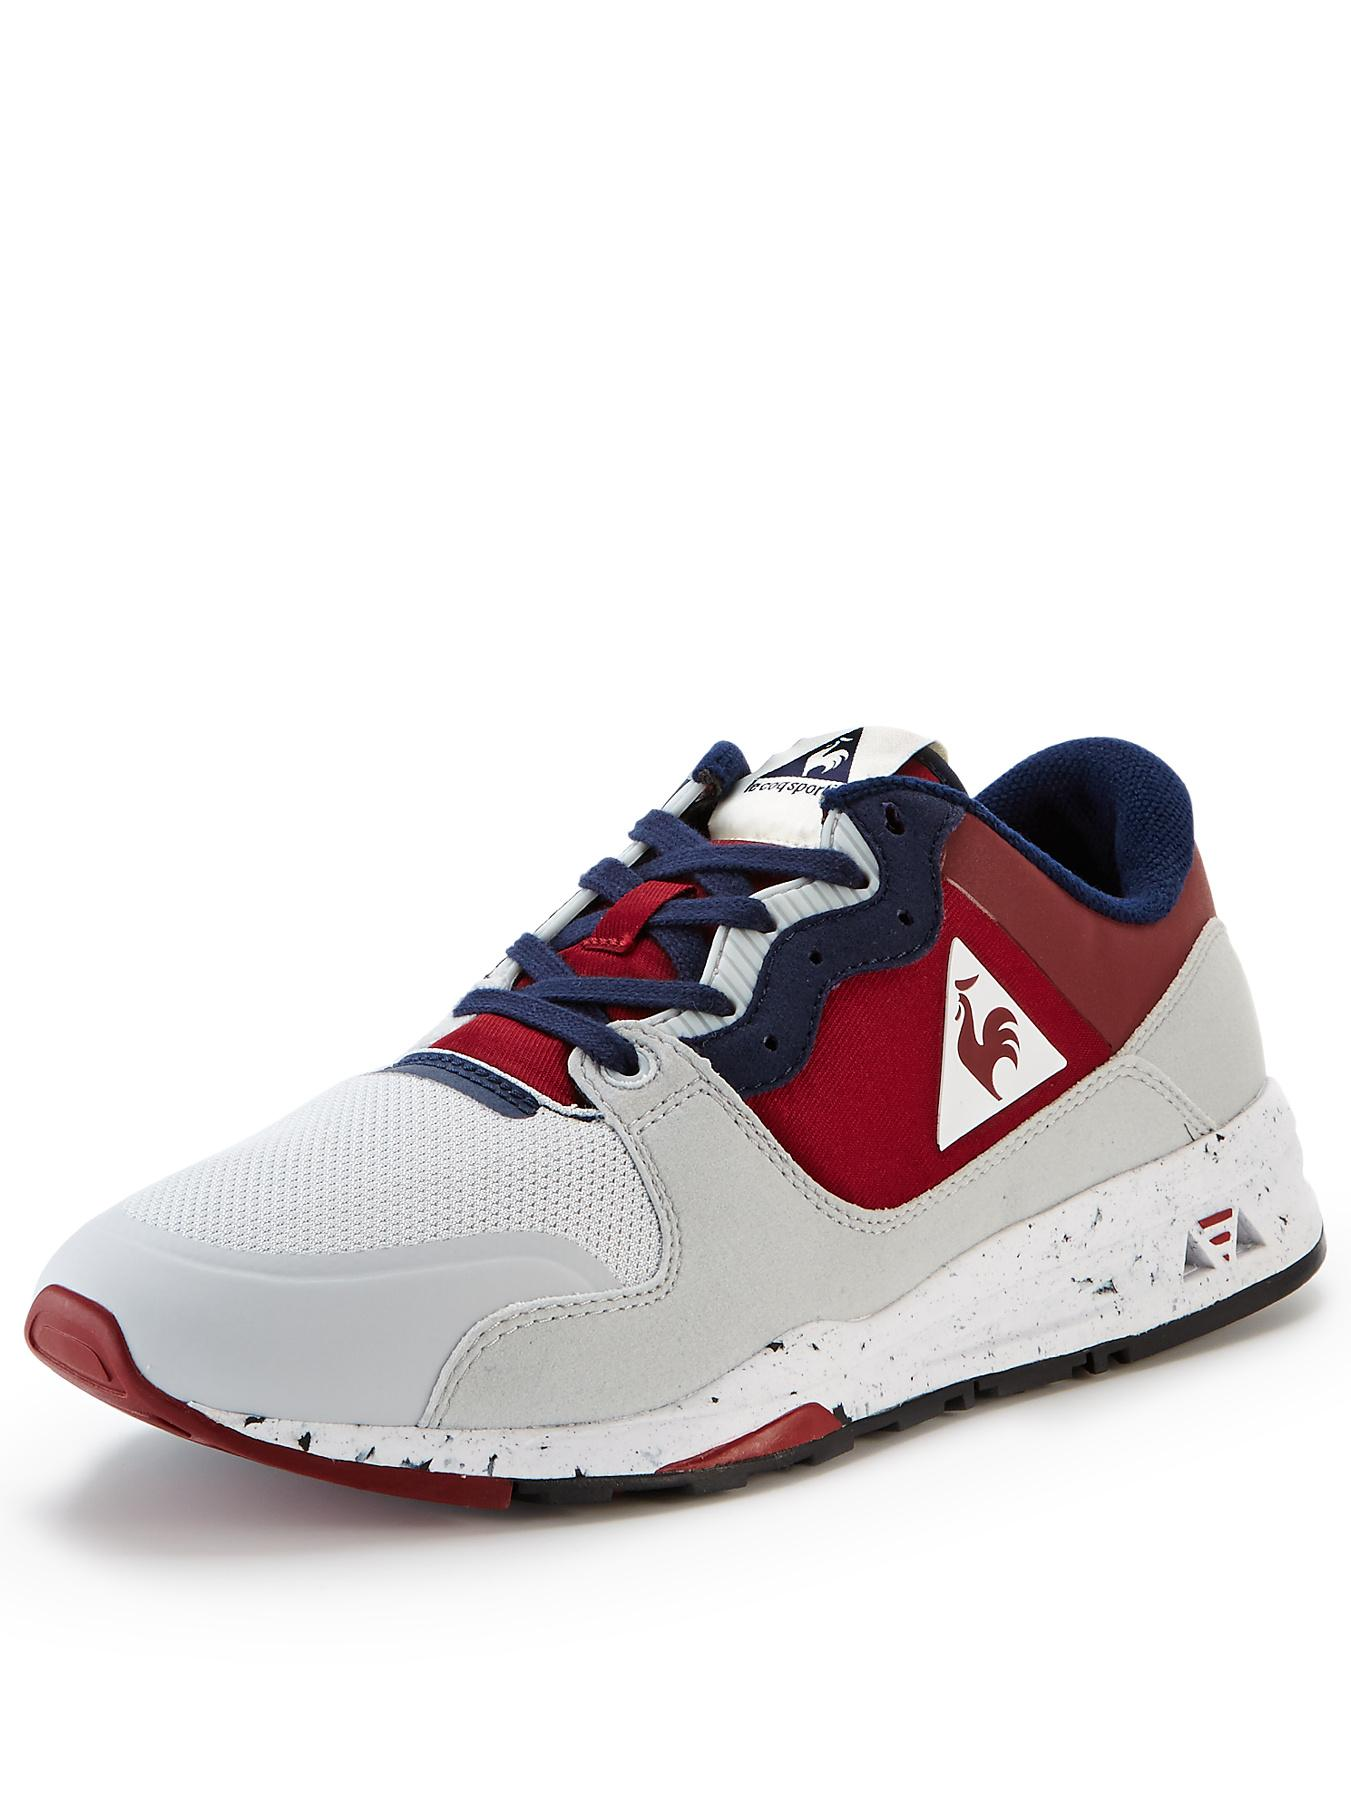 Le Coq Sportif LCS R 1400 Speckled Trainers